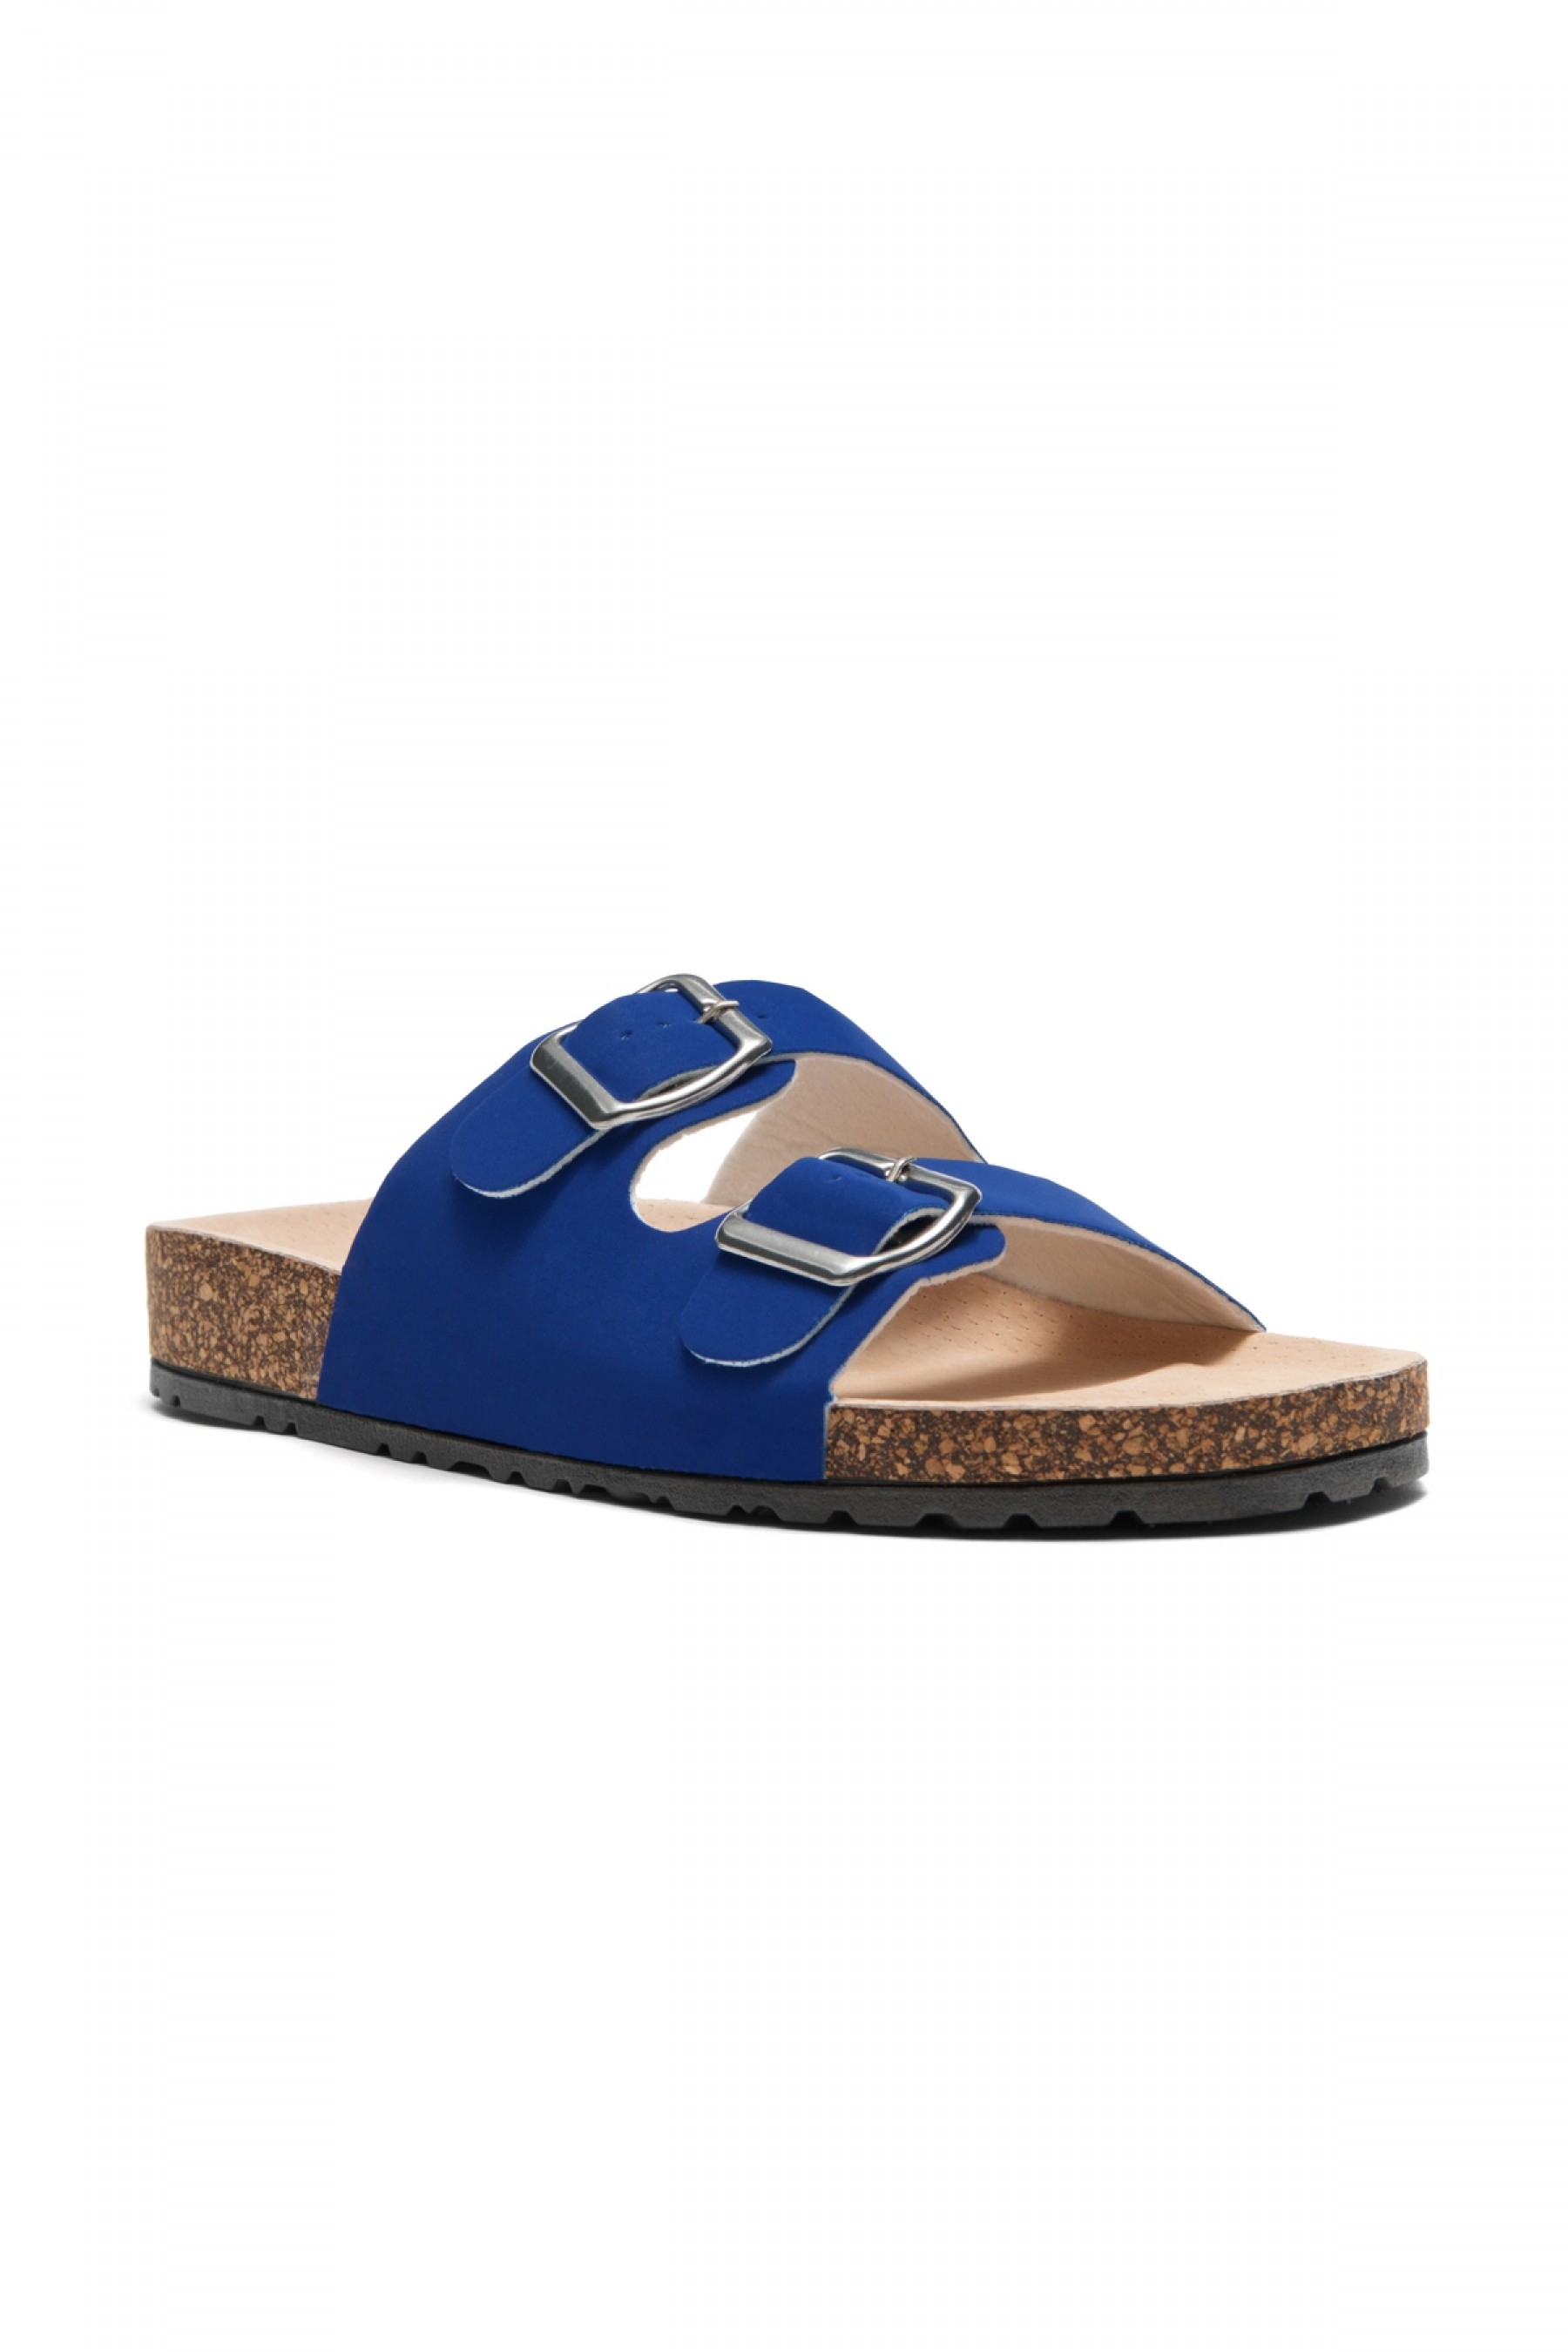 HerStyle SL-110115 Open Toe Buckled Cork Slide Sandal (RoyalBlue)